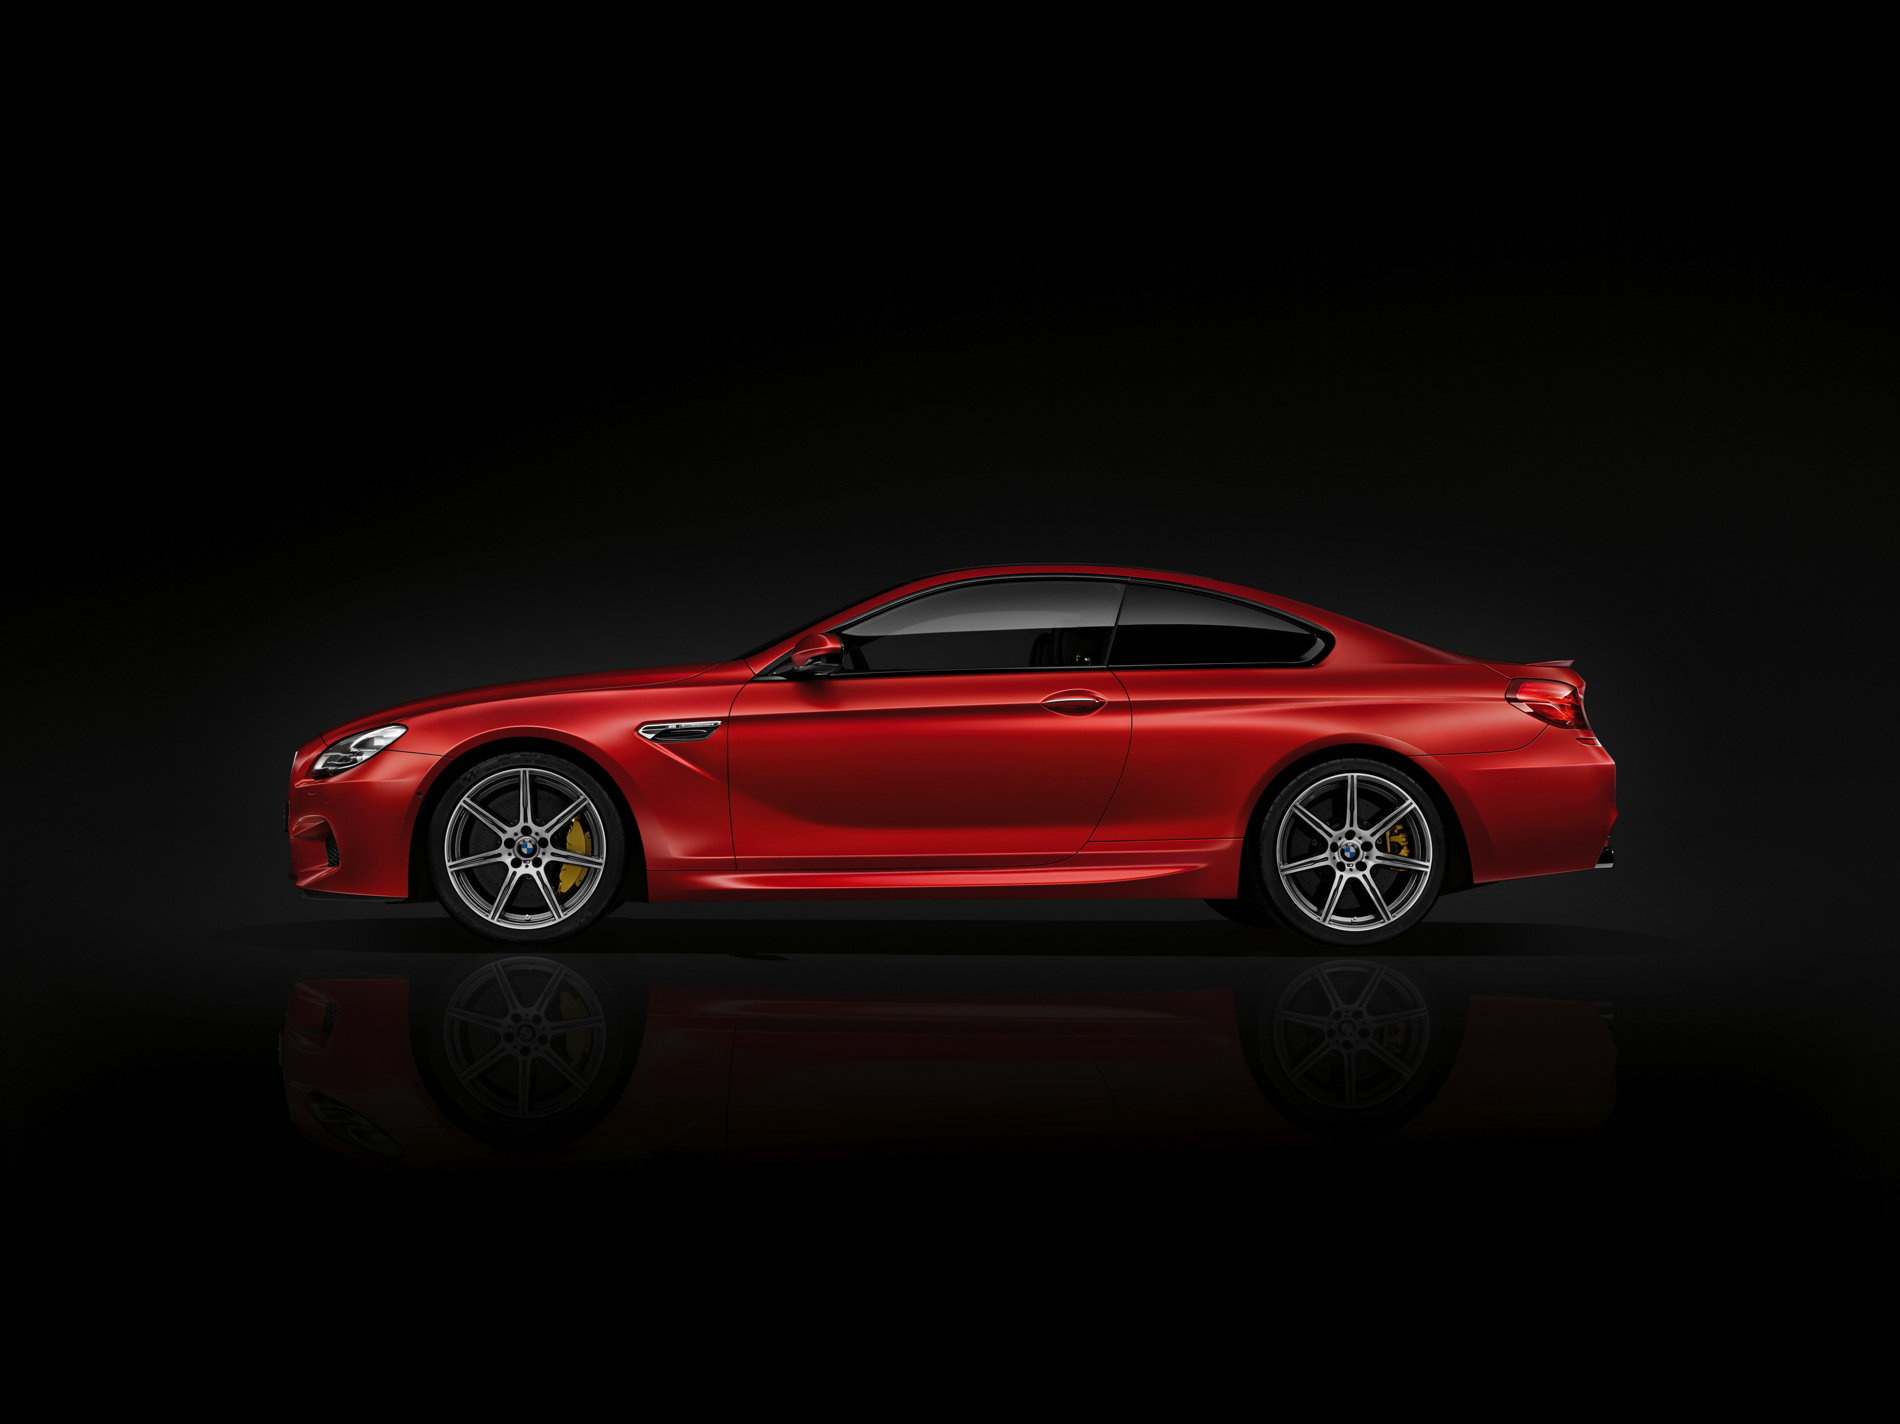 2015 bmw m6 competition package 600hp images 05